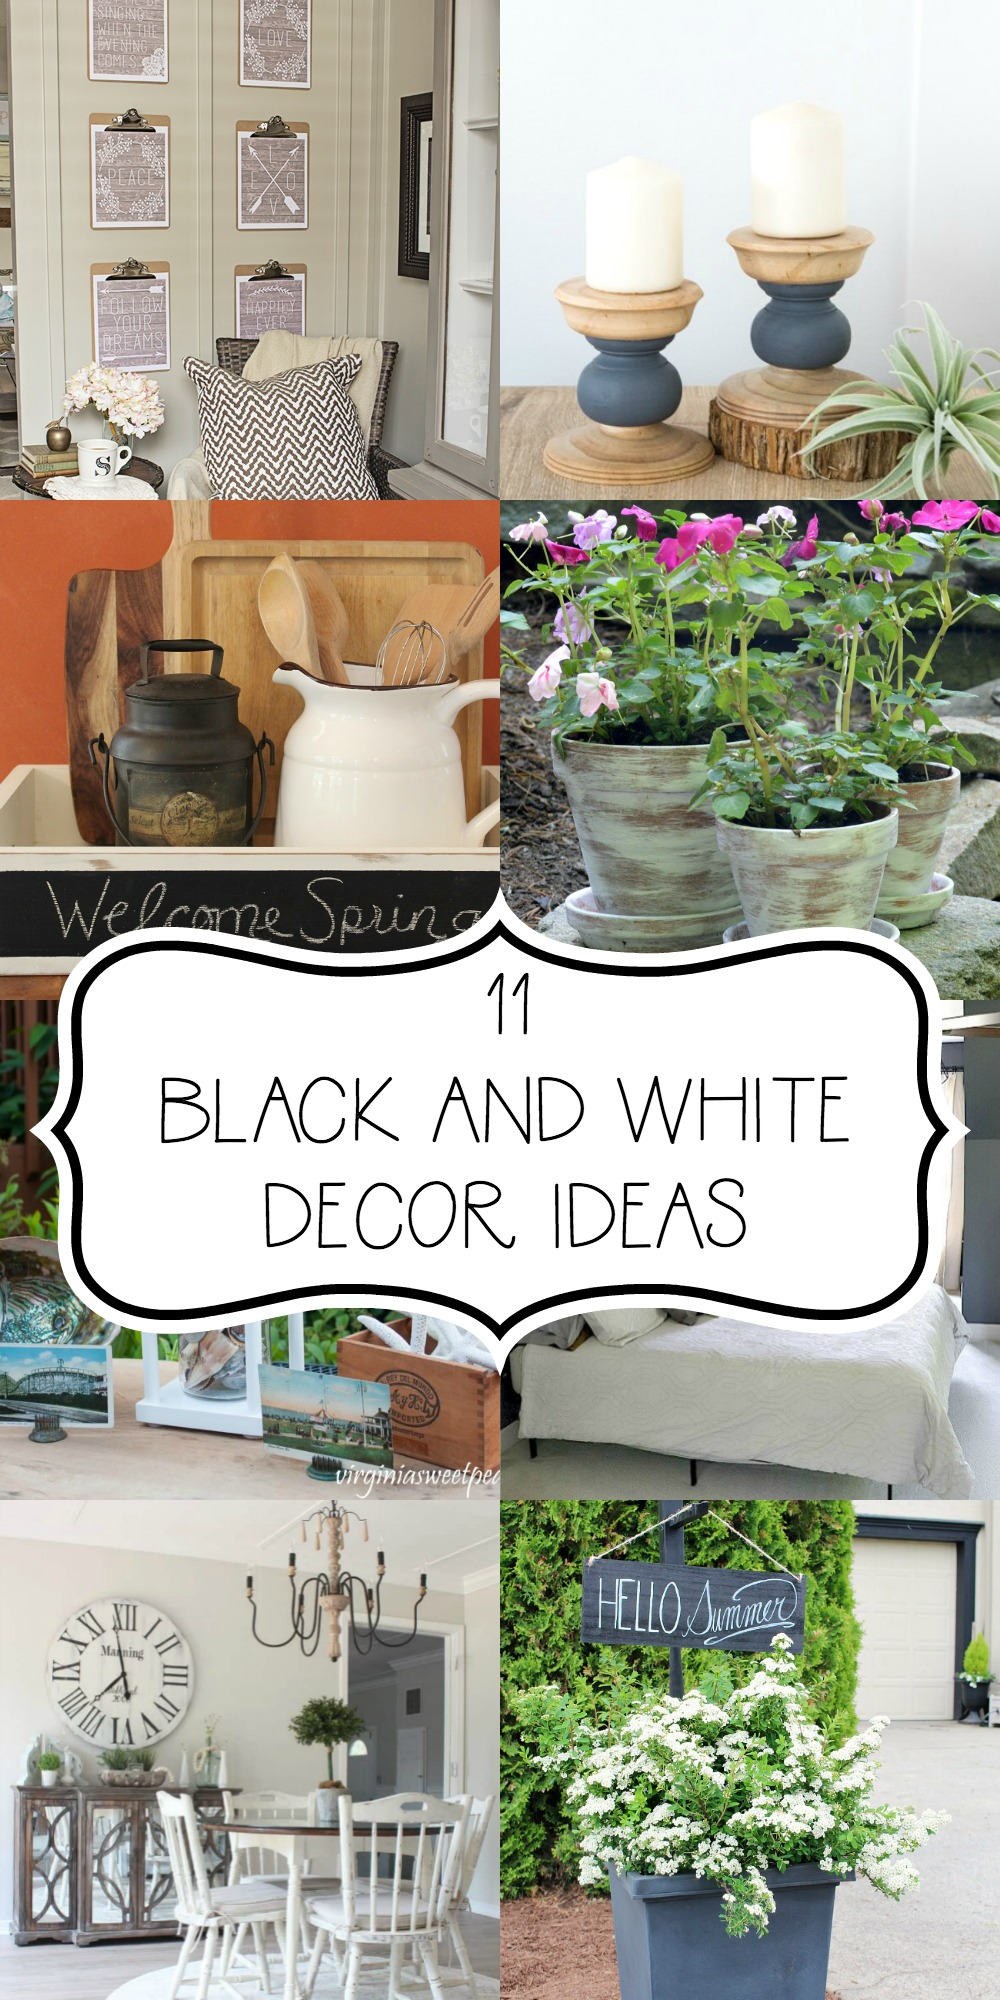 11 Black and White Decor Ideas